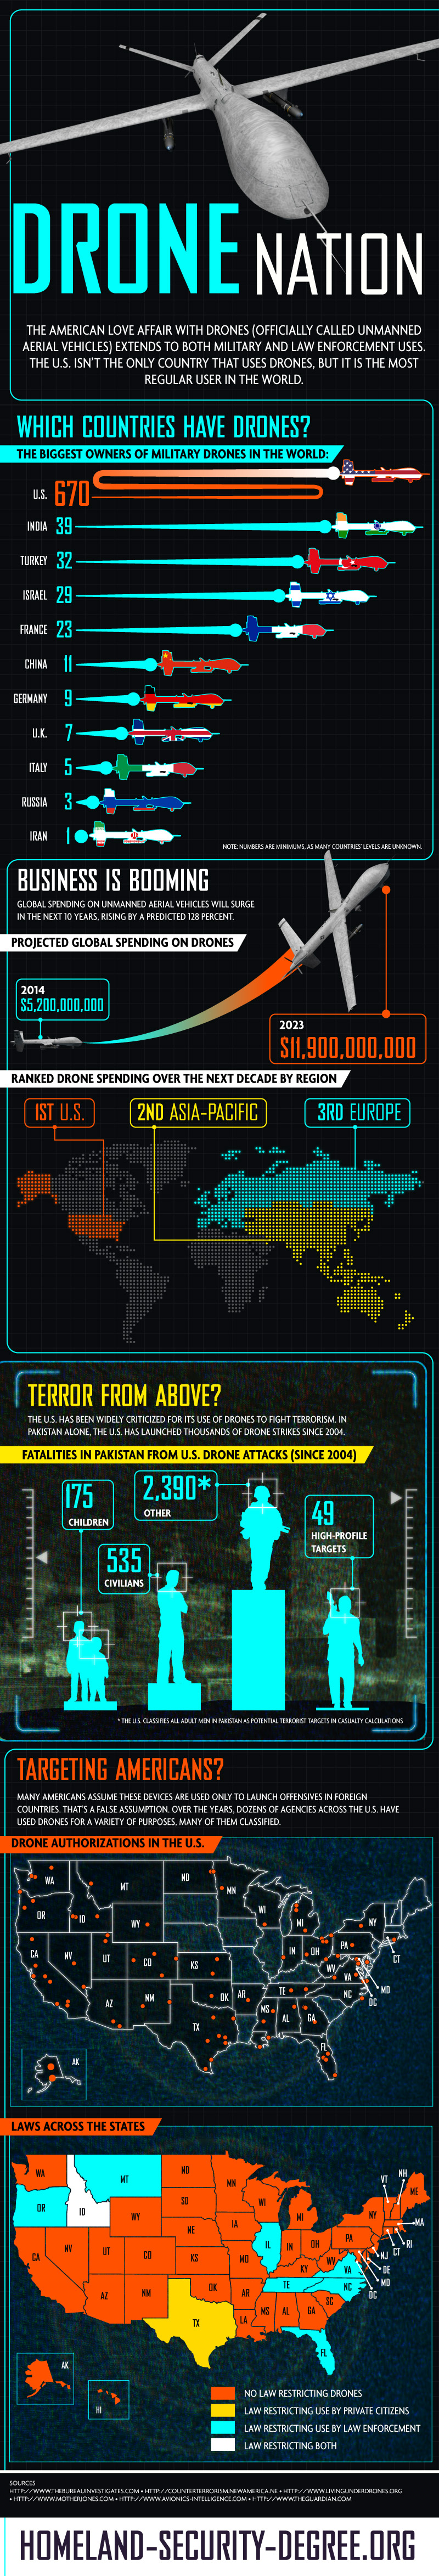 Drone Nation Infographic Drones